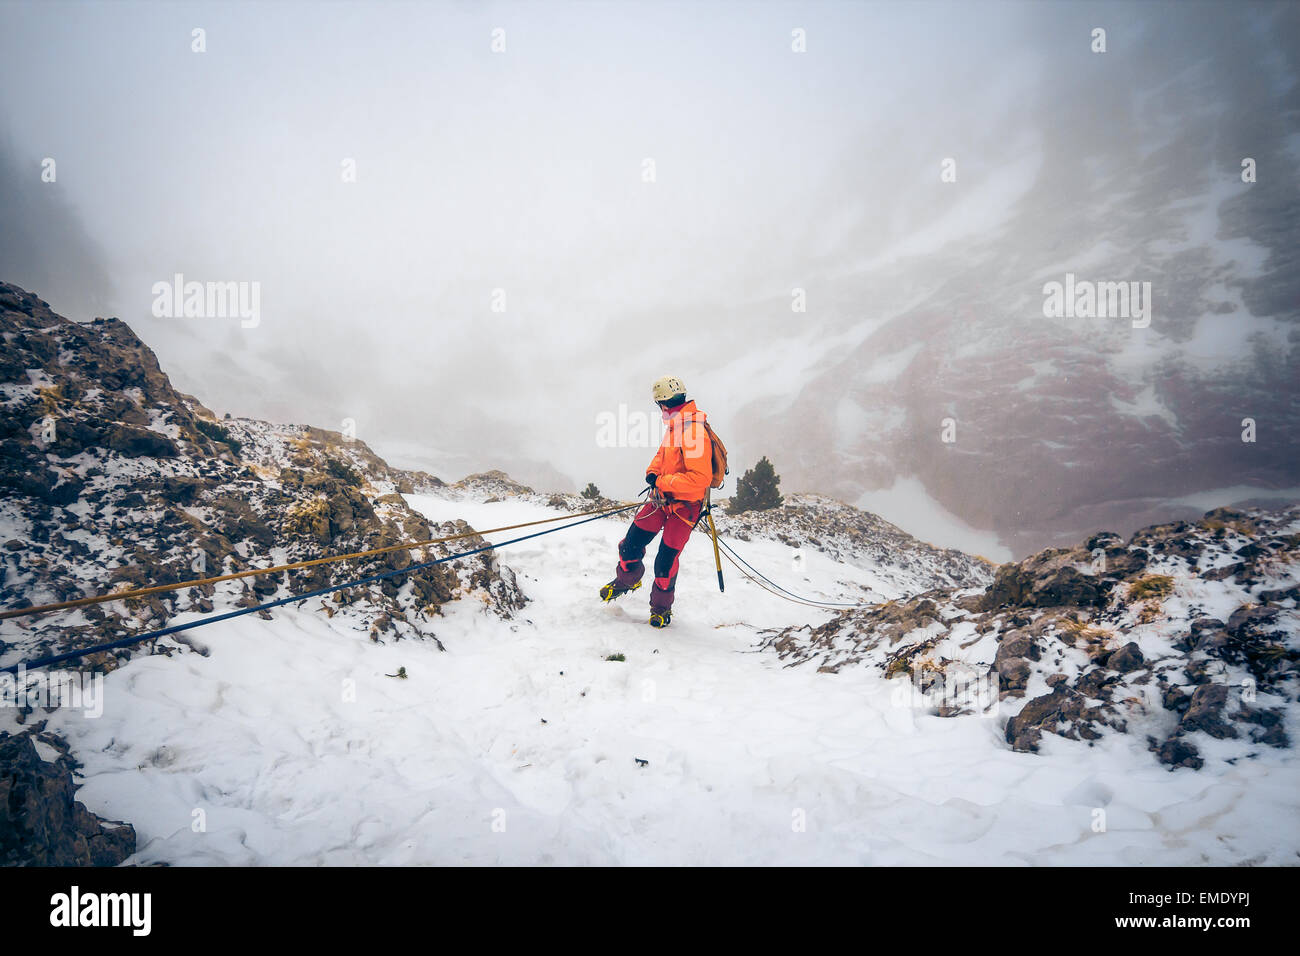 Mountaineer rappelling. - Stock Image